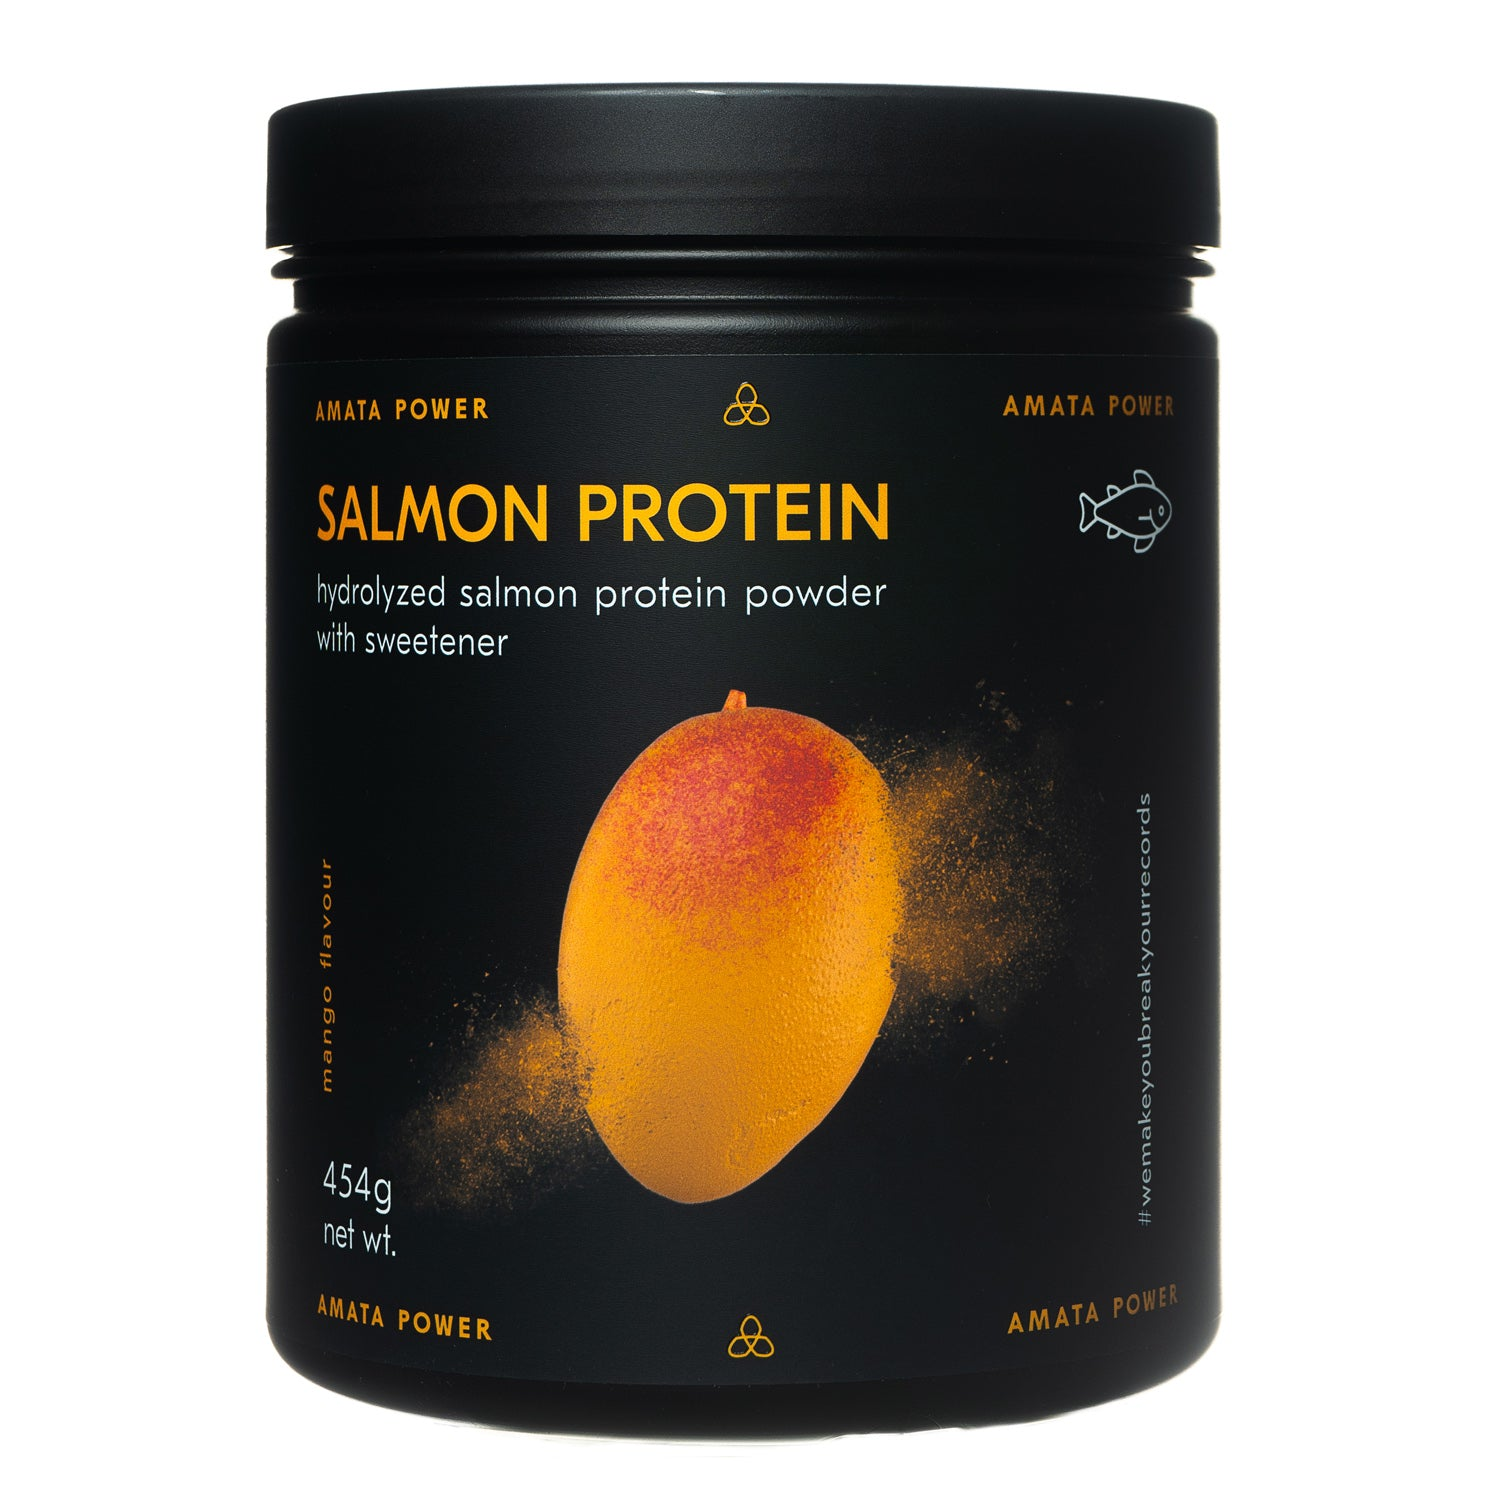 Salmon Protein Powder - 454g - Mango